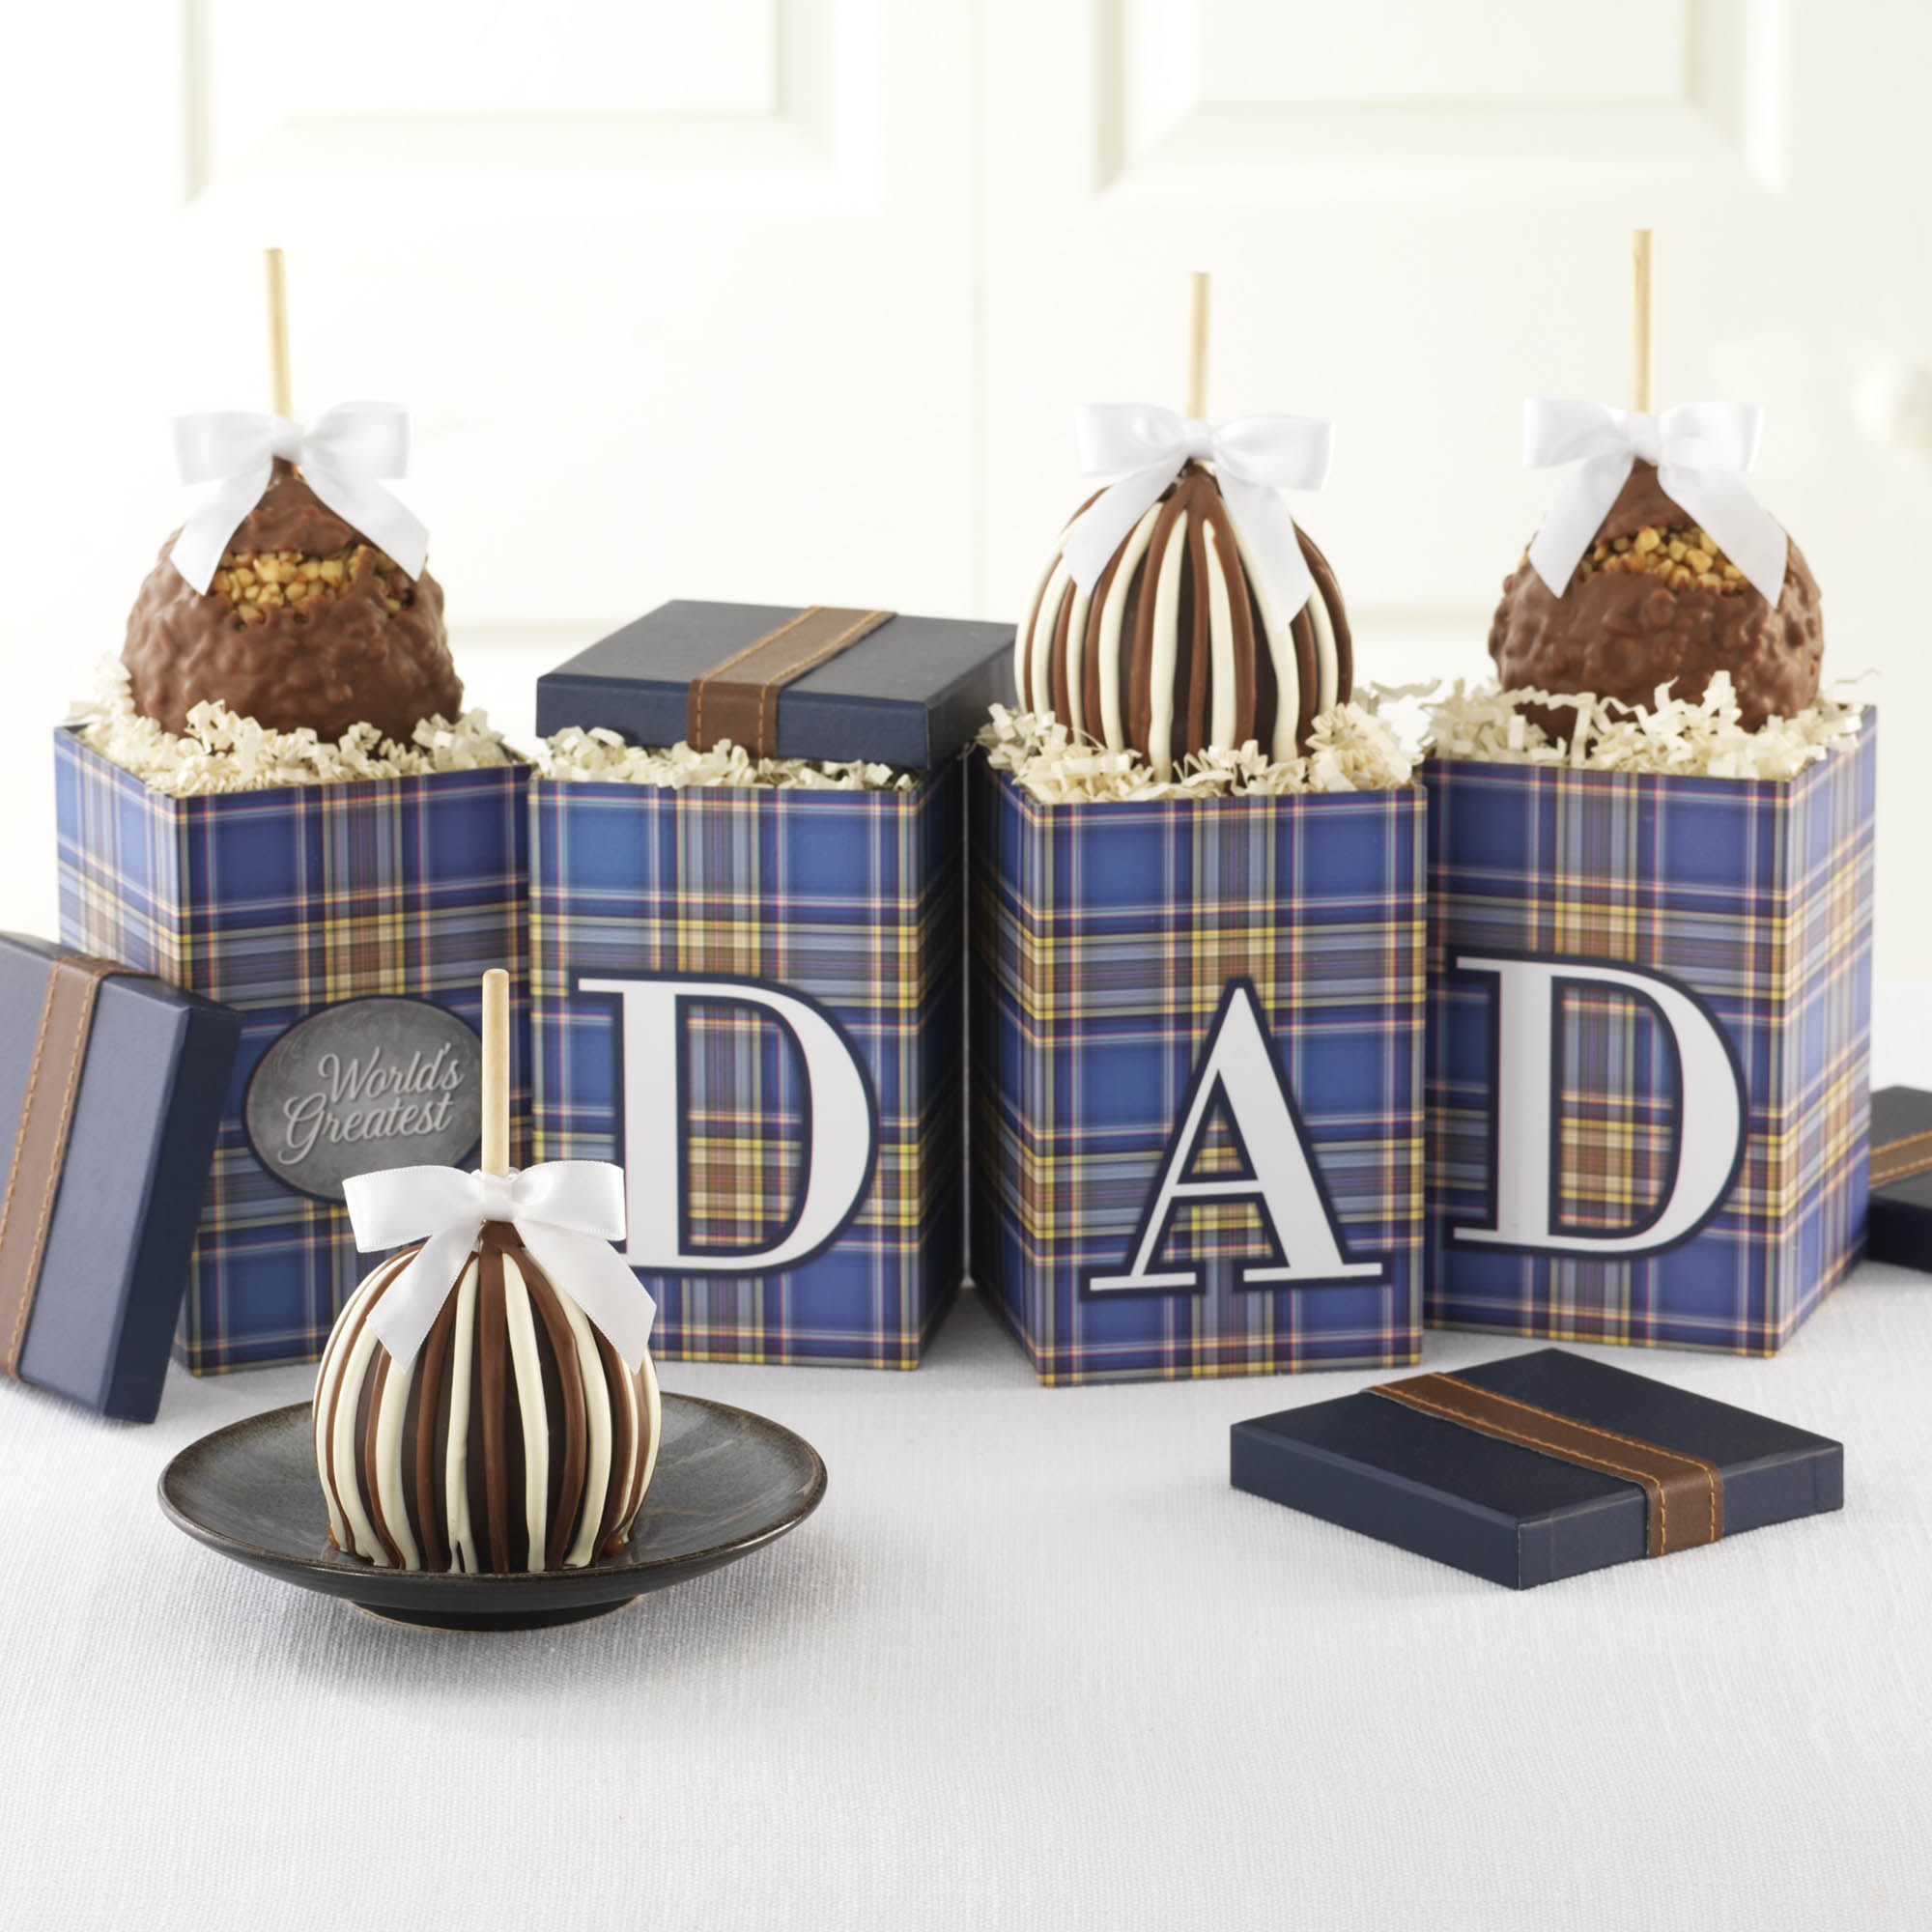 worlds-greatest-dad-petite-caramel-apple-gift-set-1930593